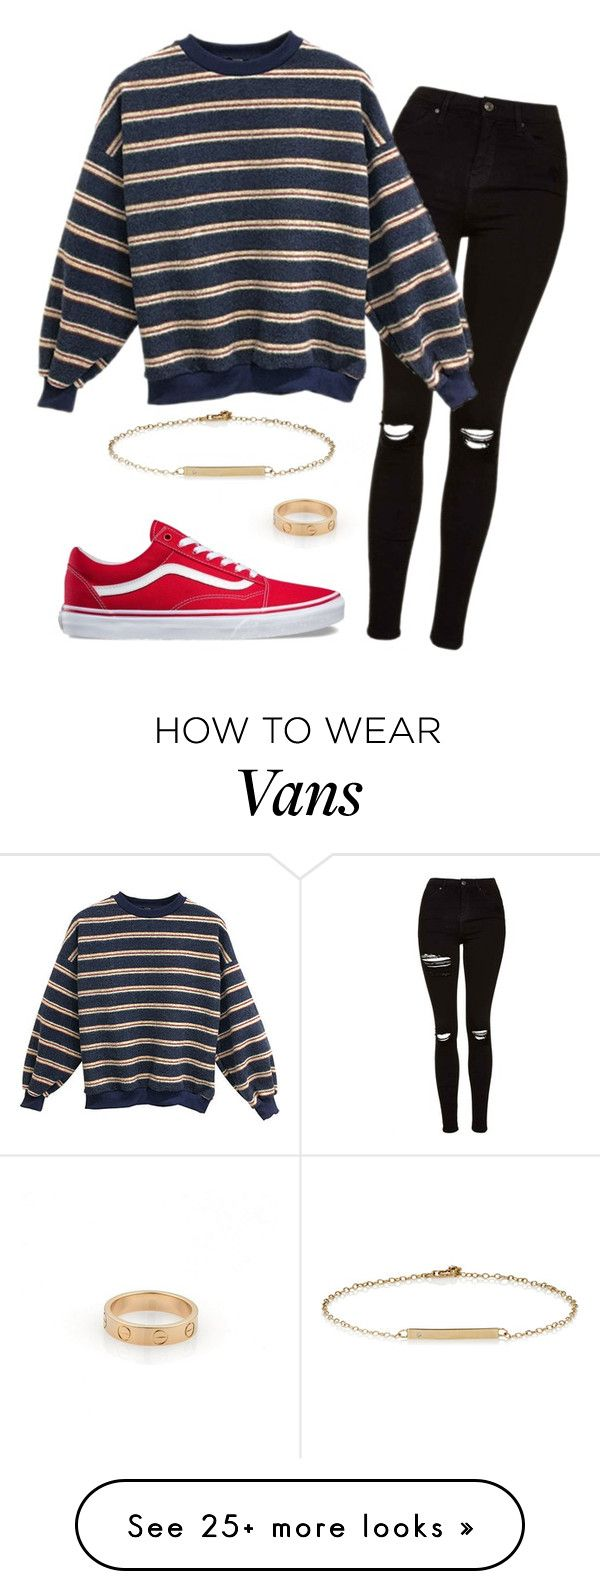 """""""#No name"""" by eemaj on Polyvore featuring Cartier, Topshop, Vans and Loren Stewart"""